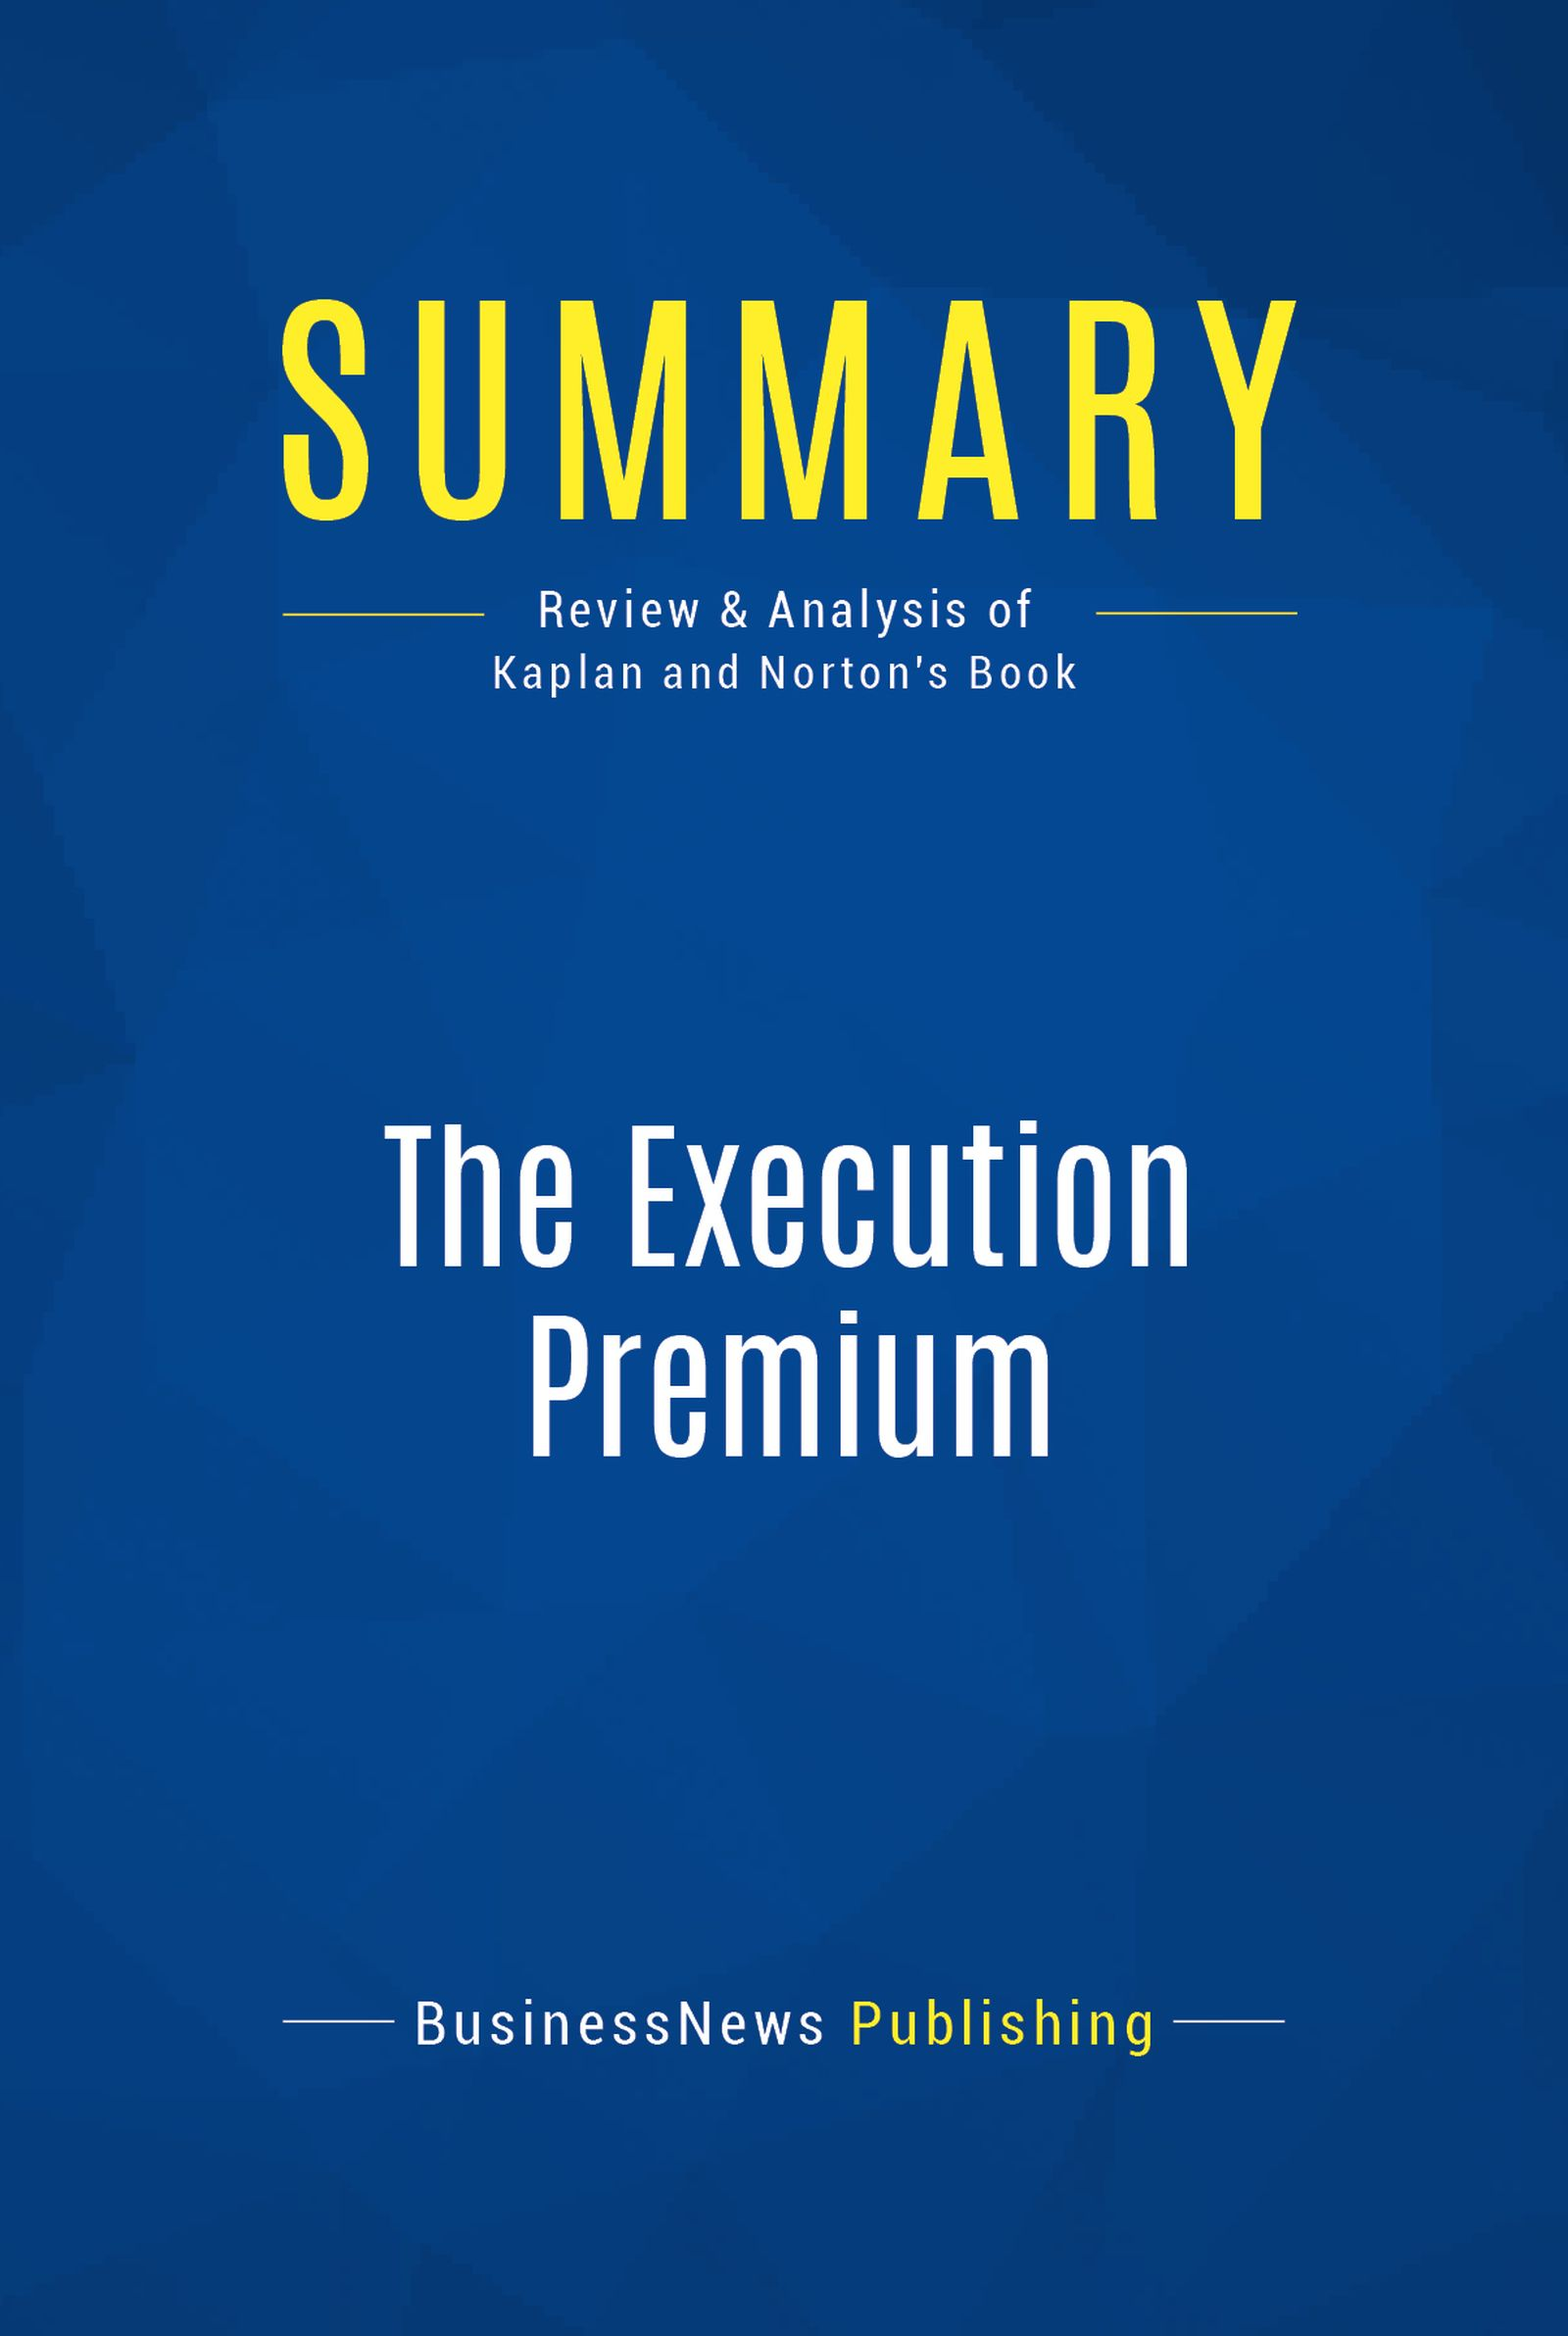 Ebook summary the execution premium review and analysis of kaplan livre numrique summary the execution premium fandeluxe Gallery